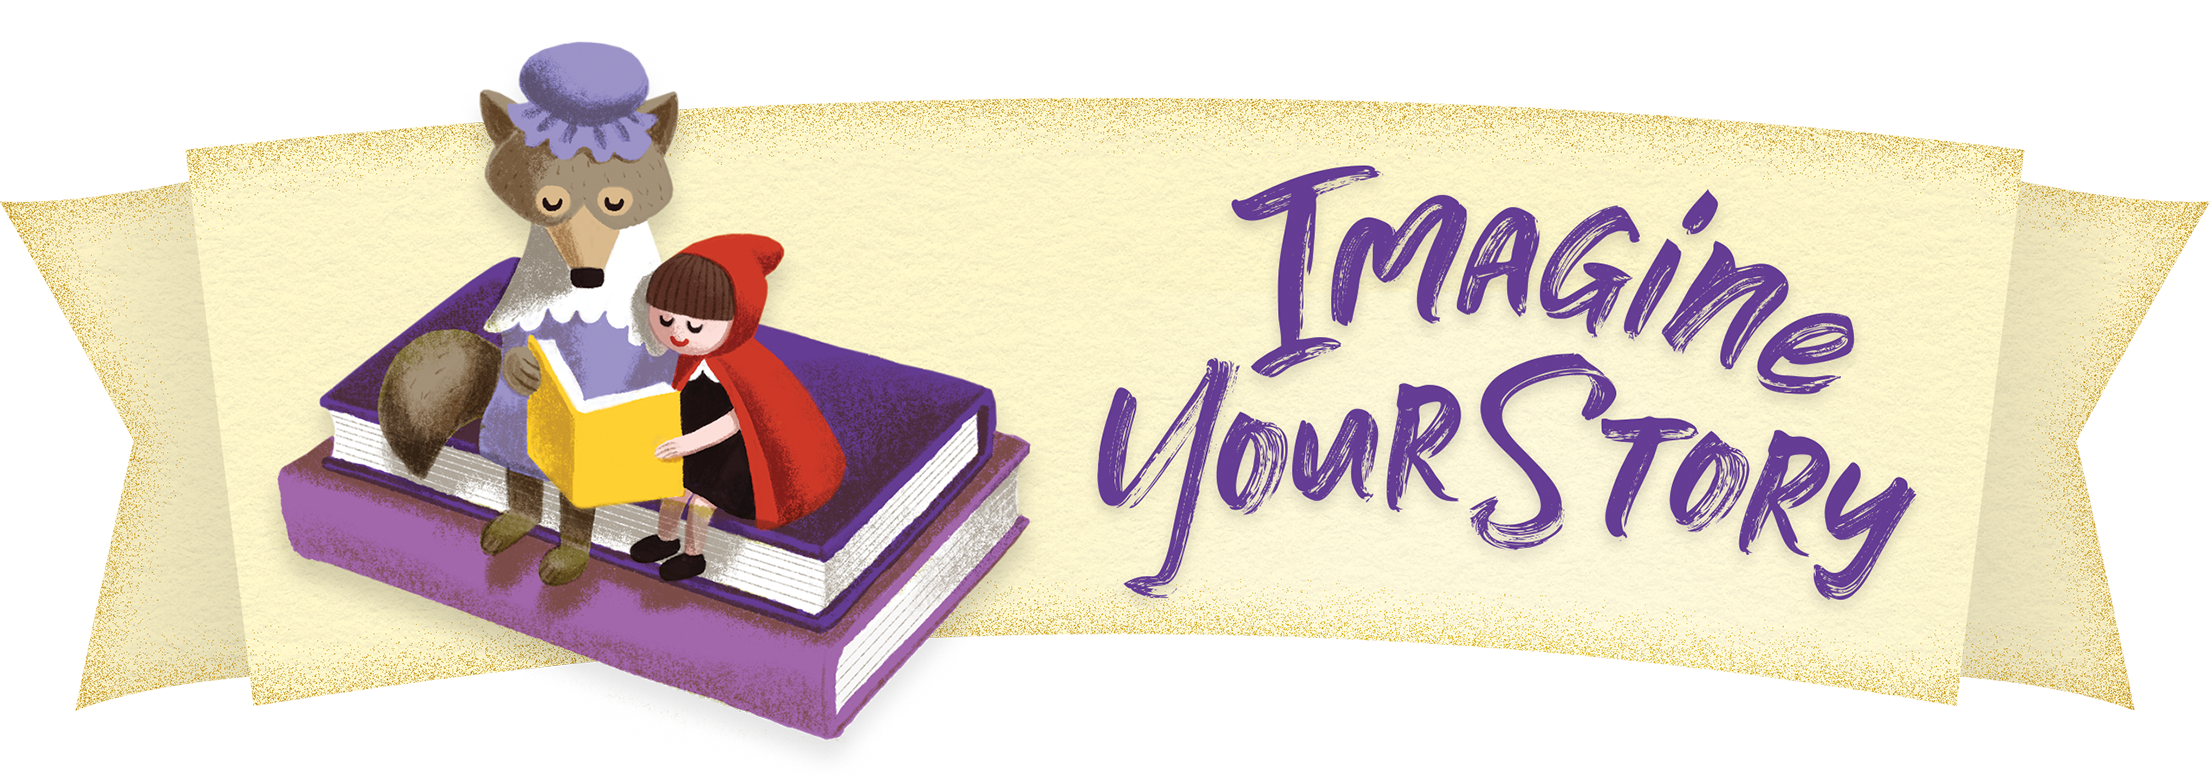 Image is one of the 2020 CSLP Summer Reading Program logos. Says Imagine Your Story.